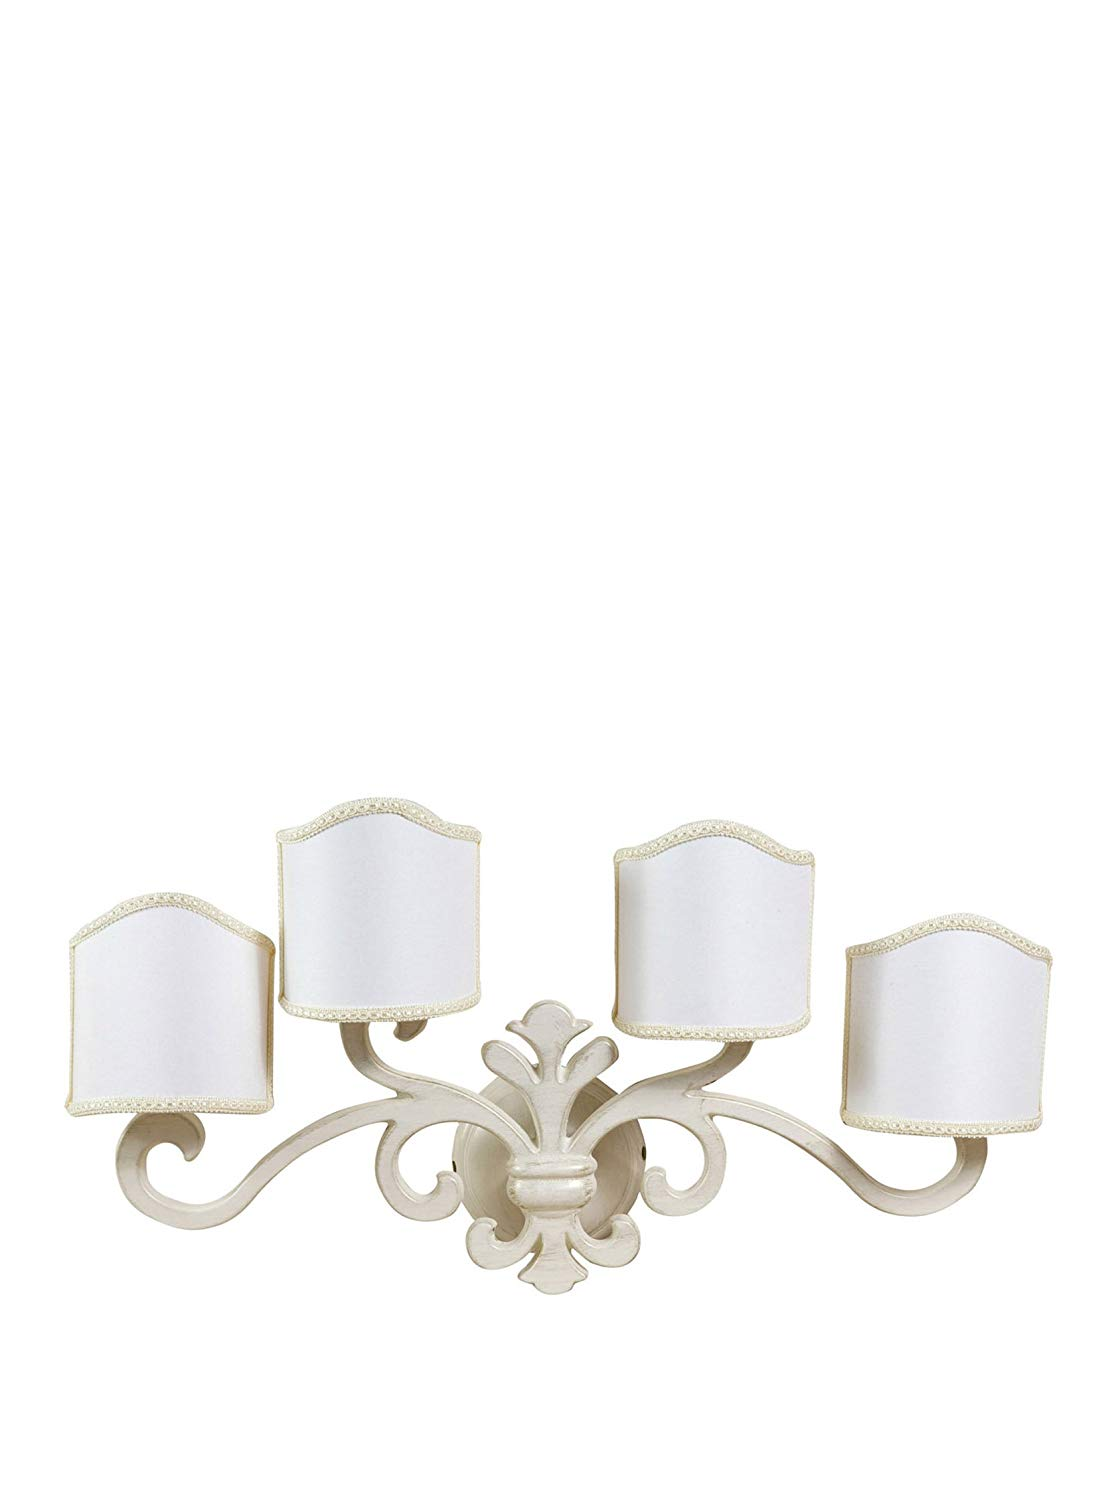 W56XDP17XH30 cm Sized Made in Italy Casting Aged Brass Made White Lacquered Florentine-Style Wall Applique lamp